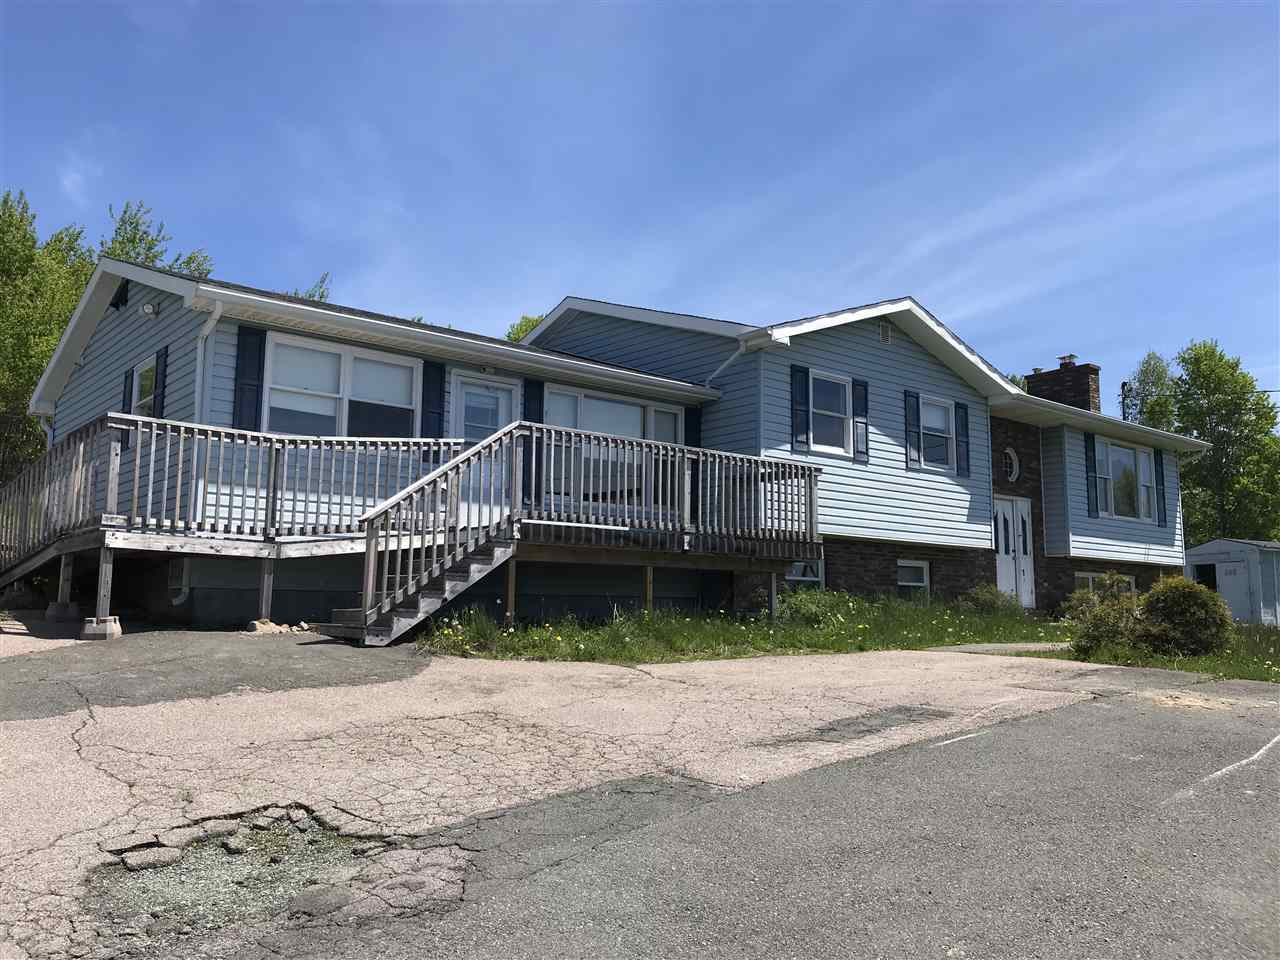 Main Photo: 14 Egerton Street in Trenton: 107-Trenton,Westville,Pictou Residential for sale (Northern Region)  : MLS®# 201813053